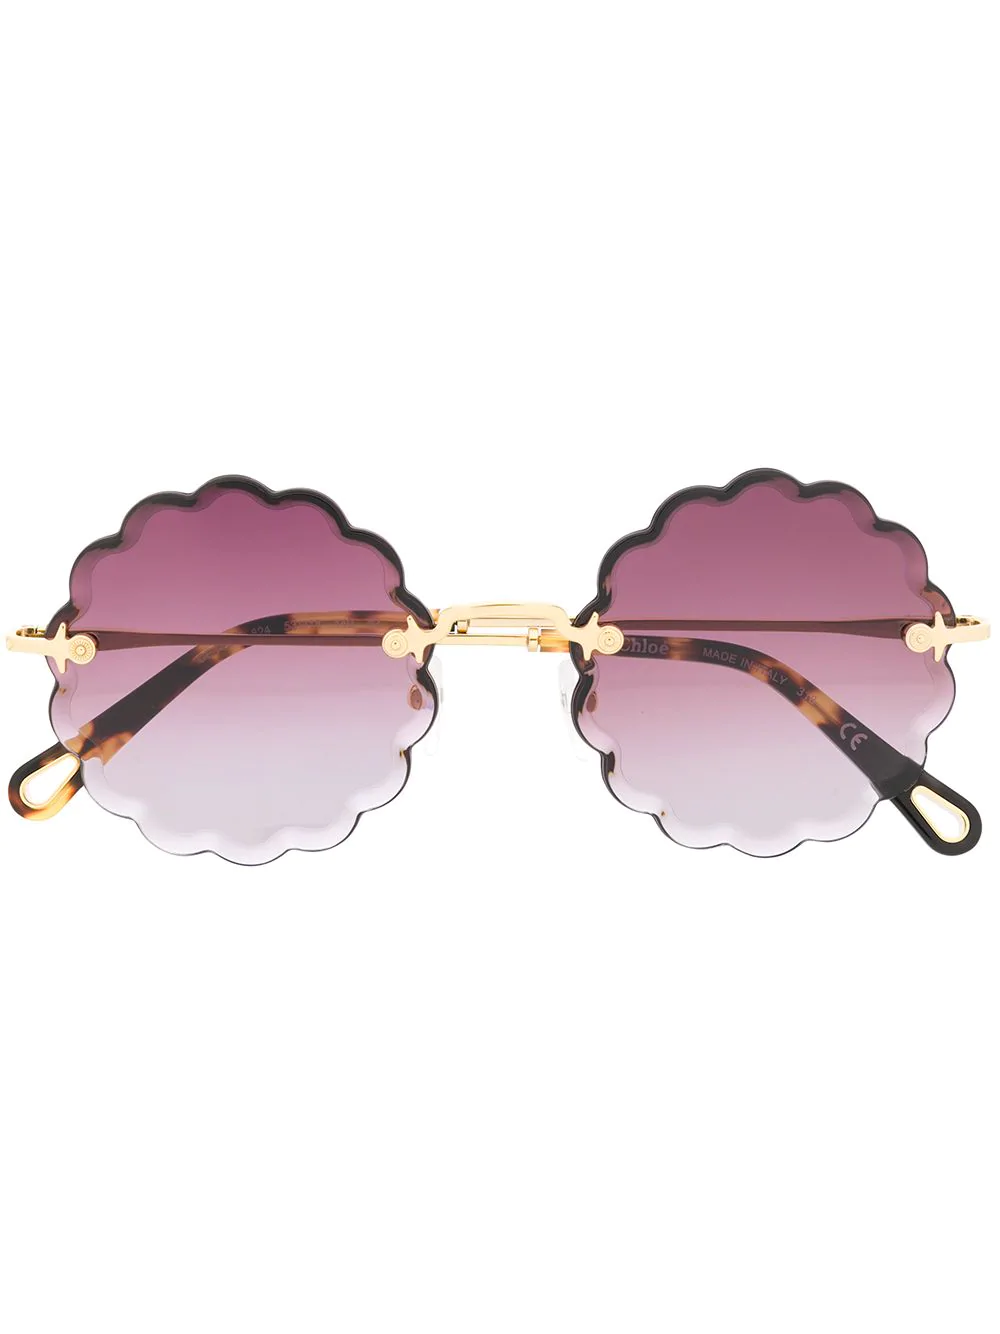 ff2bb30876f Gold-tone titanium scalloped edge sunglasses from Chloé Eyewear featuring  gradient lenses